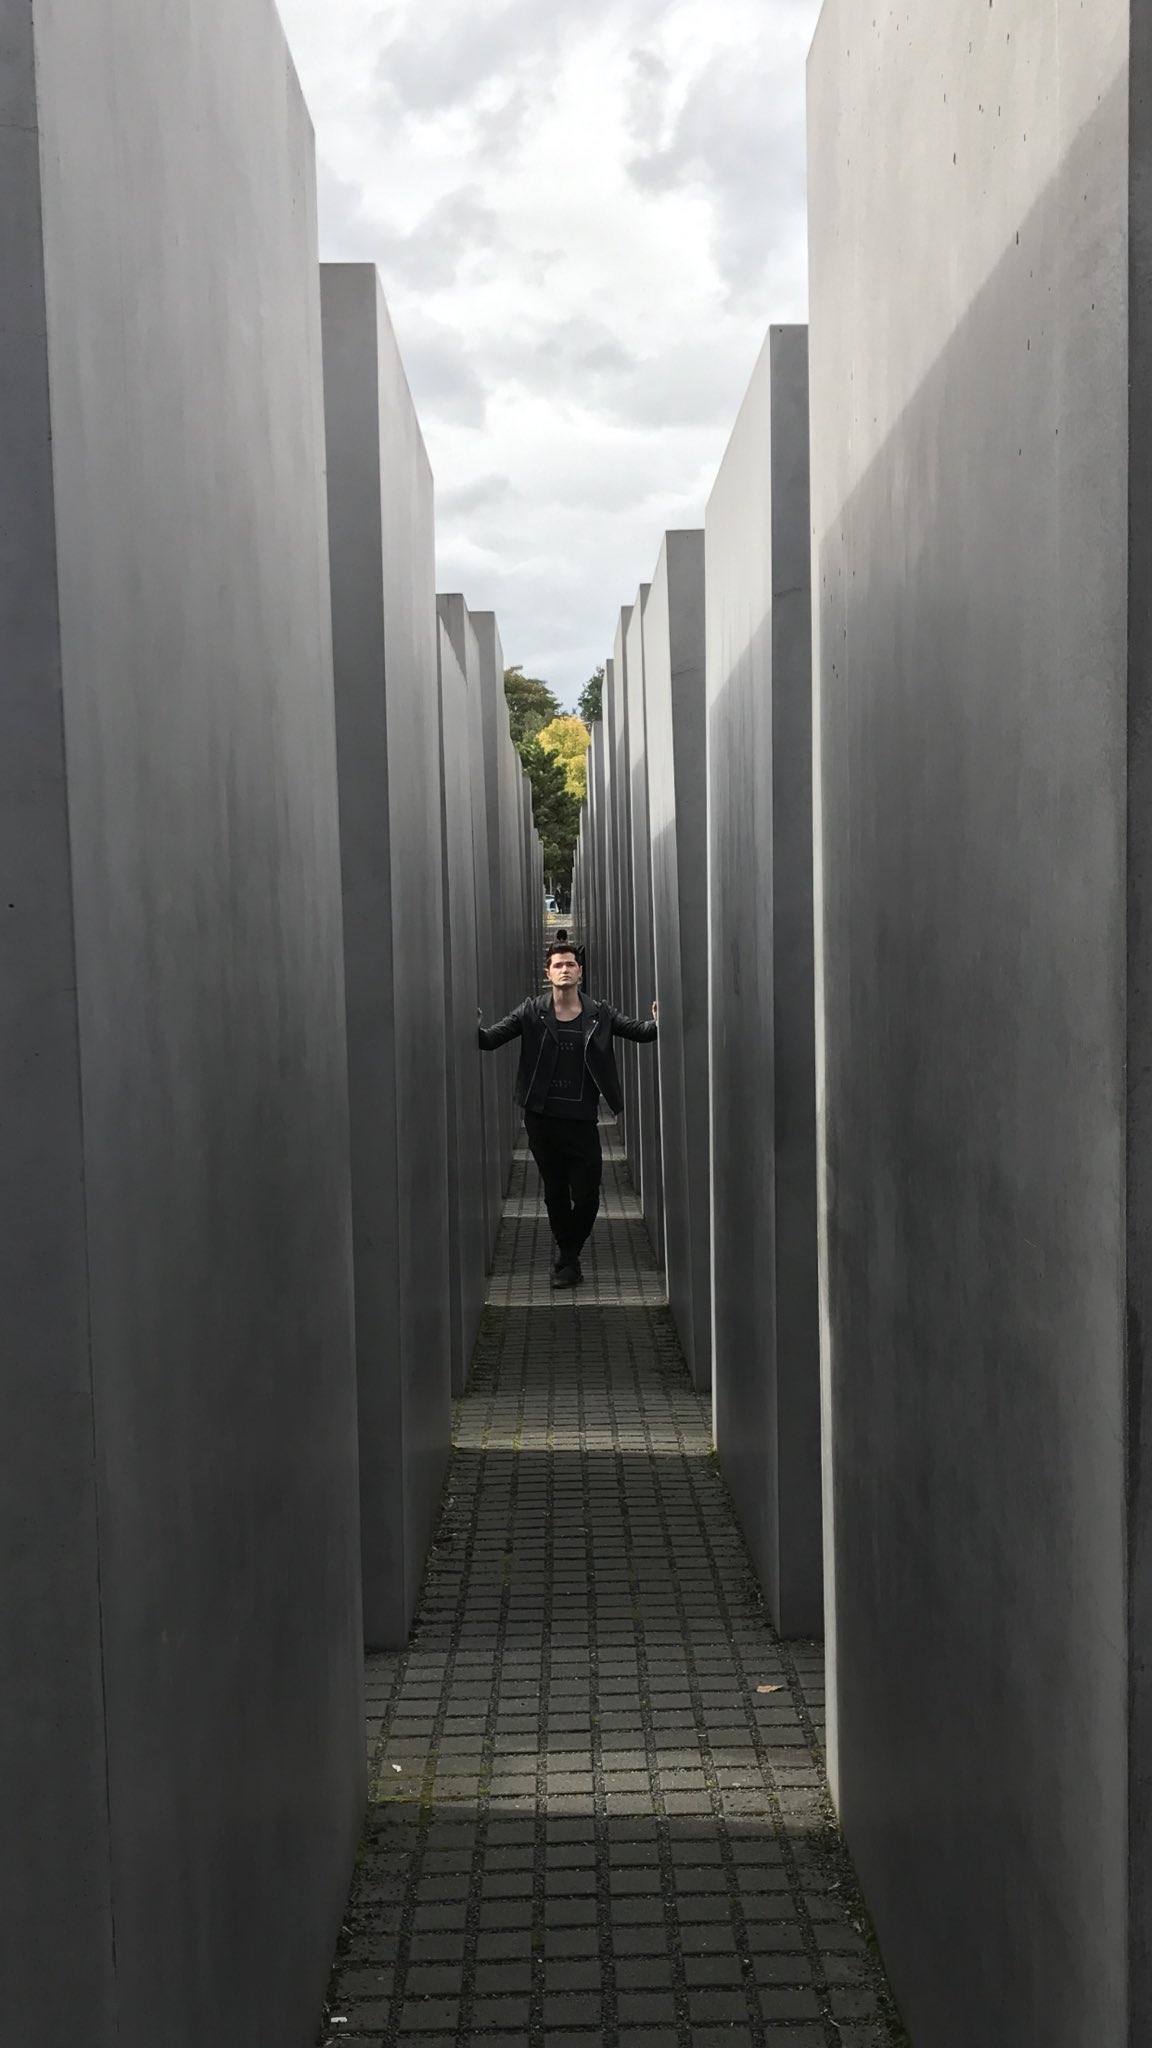 Holocaust memorial in Berlin.really hits home. God bless their souls x https://t.co/h5iFQialVZ